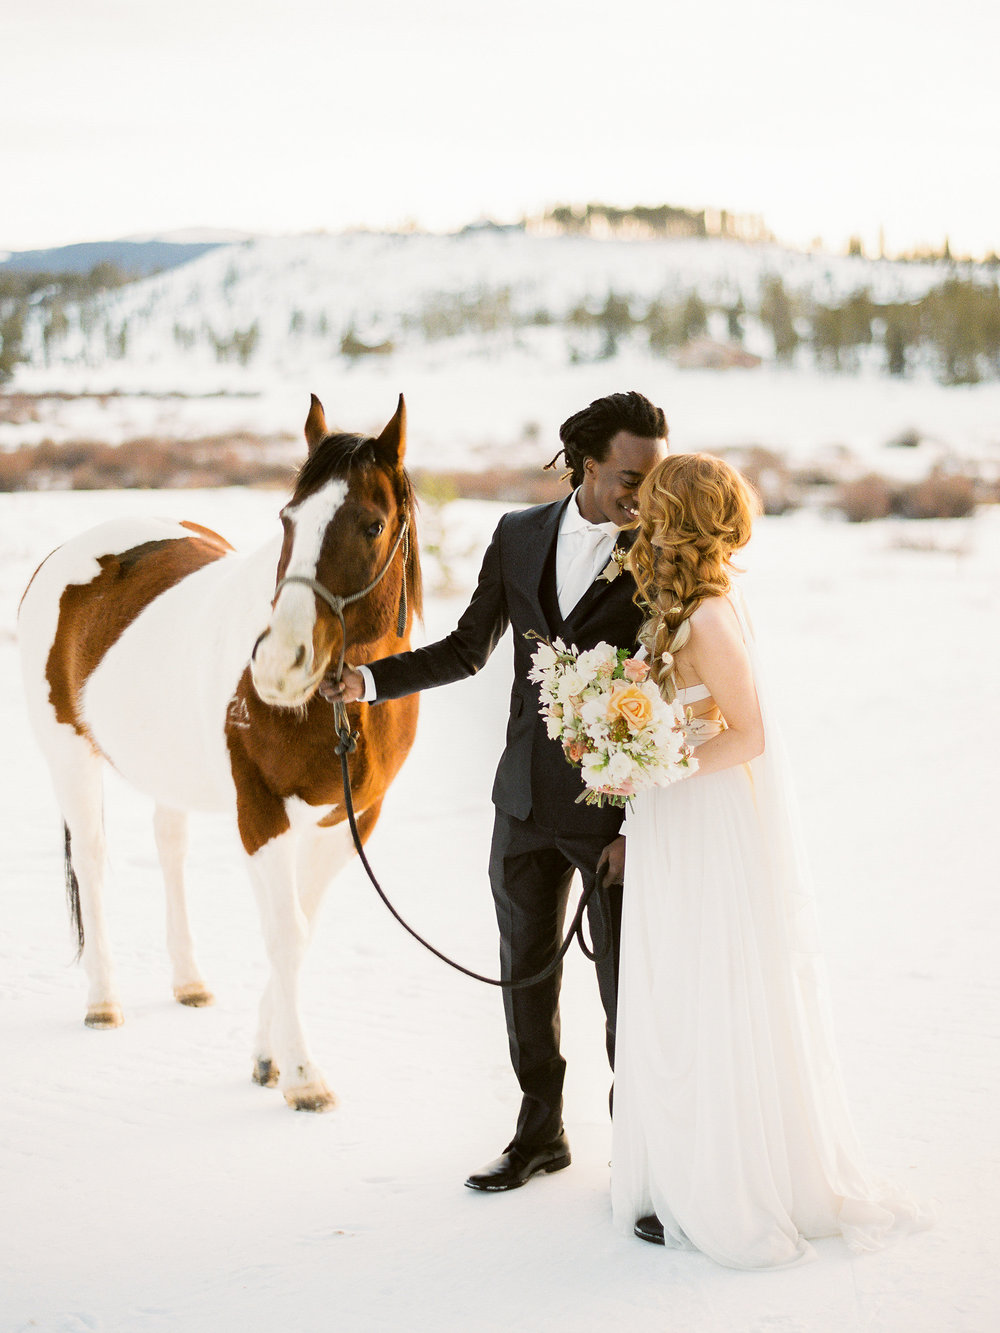 Dani-Cowan-Photography-Devils-Thumb-Ranch-Winter-Luxury-Wedding192.jpg